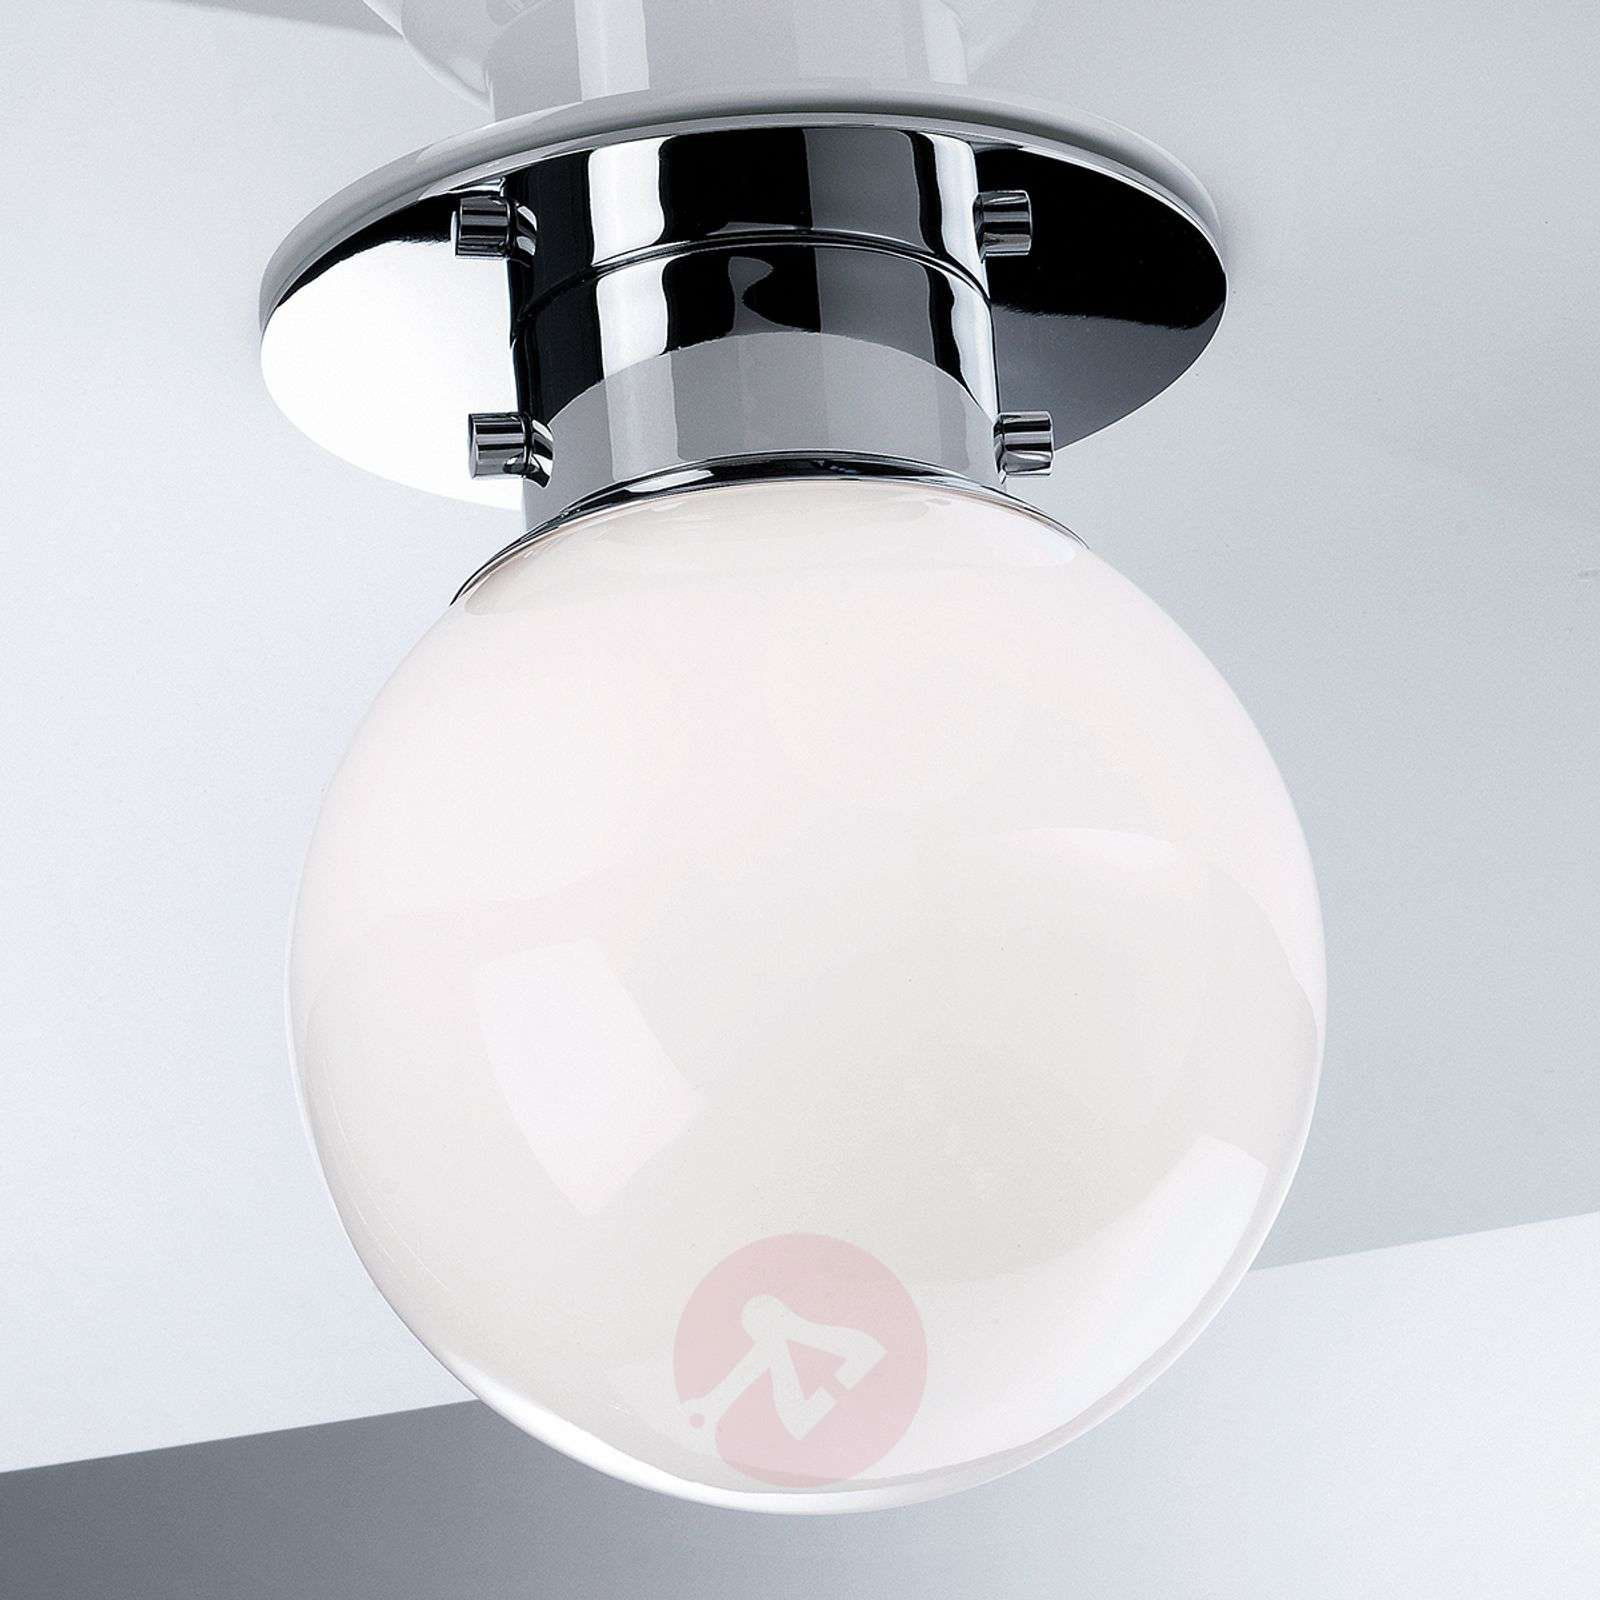 Globe classic spherical ceiling light chrome lights globe classic spherical ceiling light chrome 2504178 01 mozeypictures Image collections